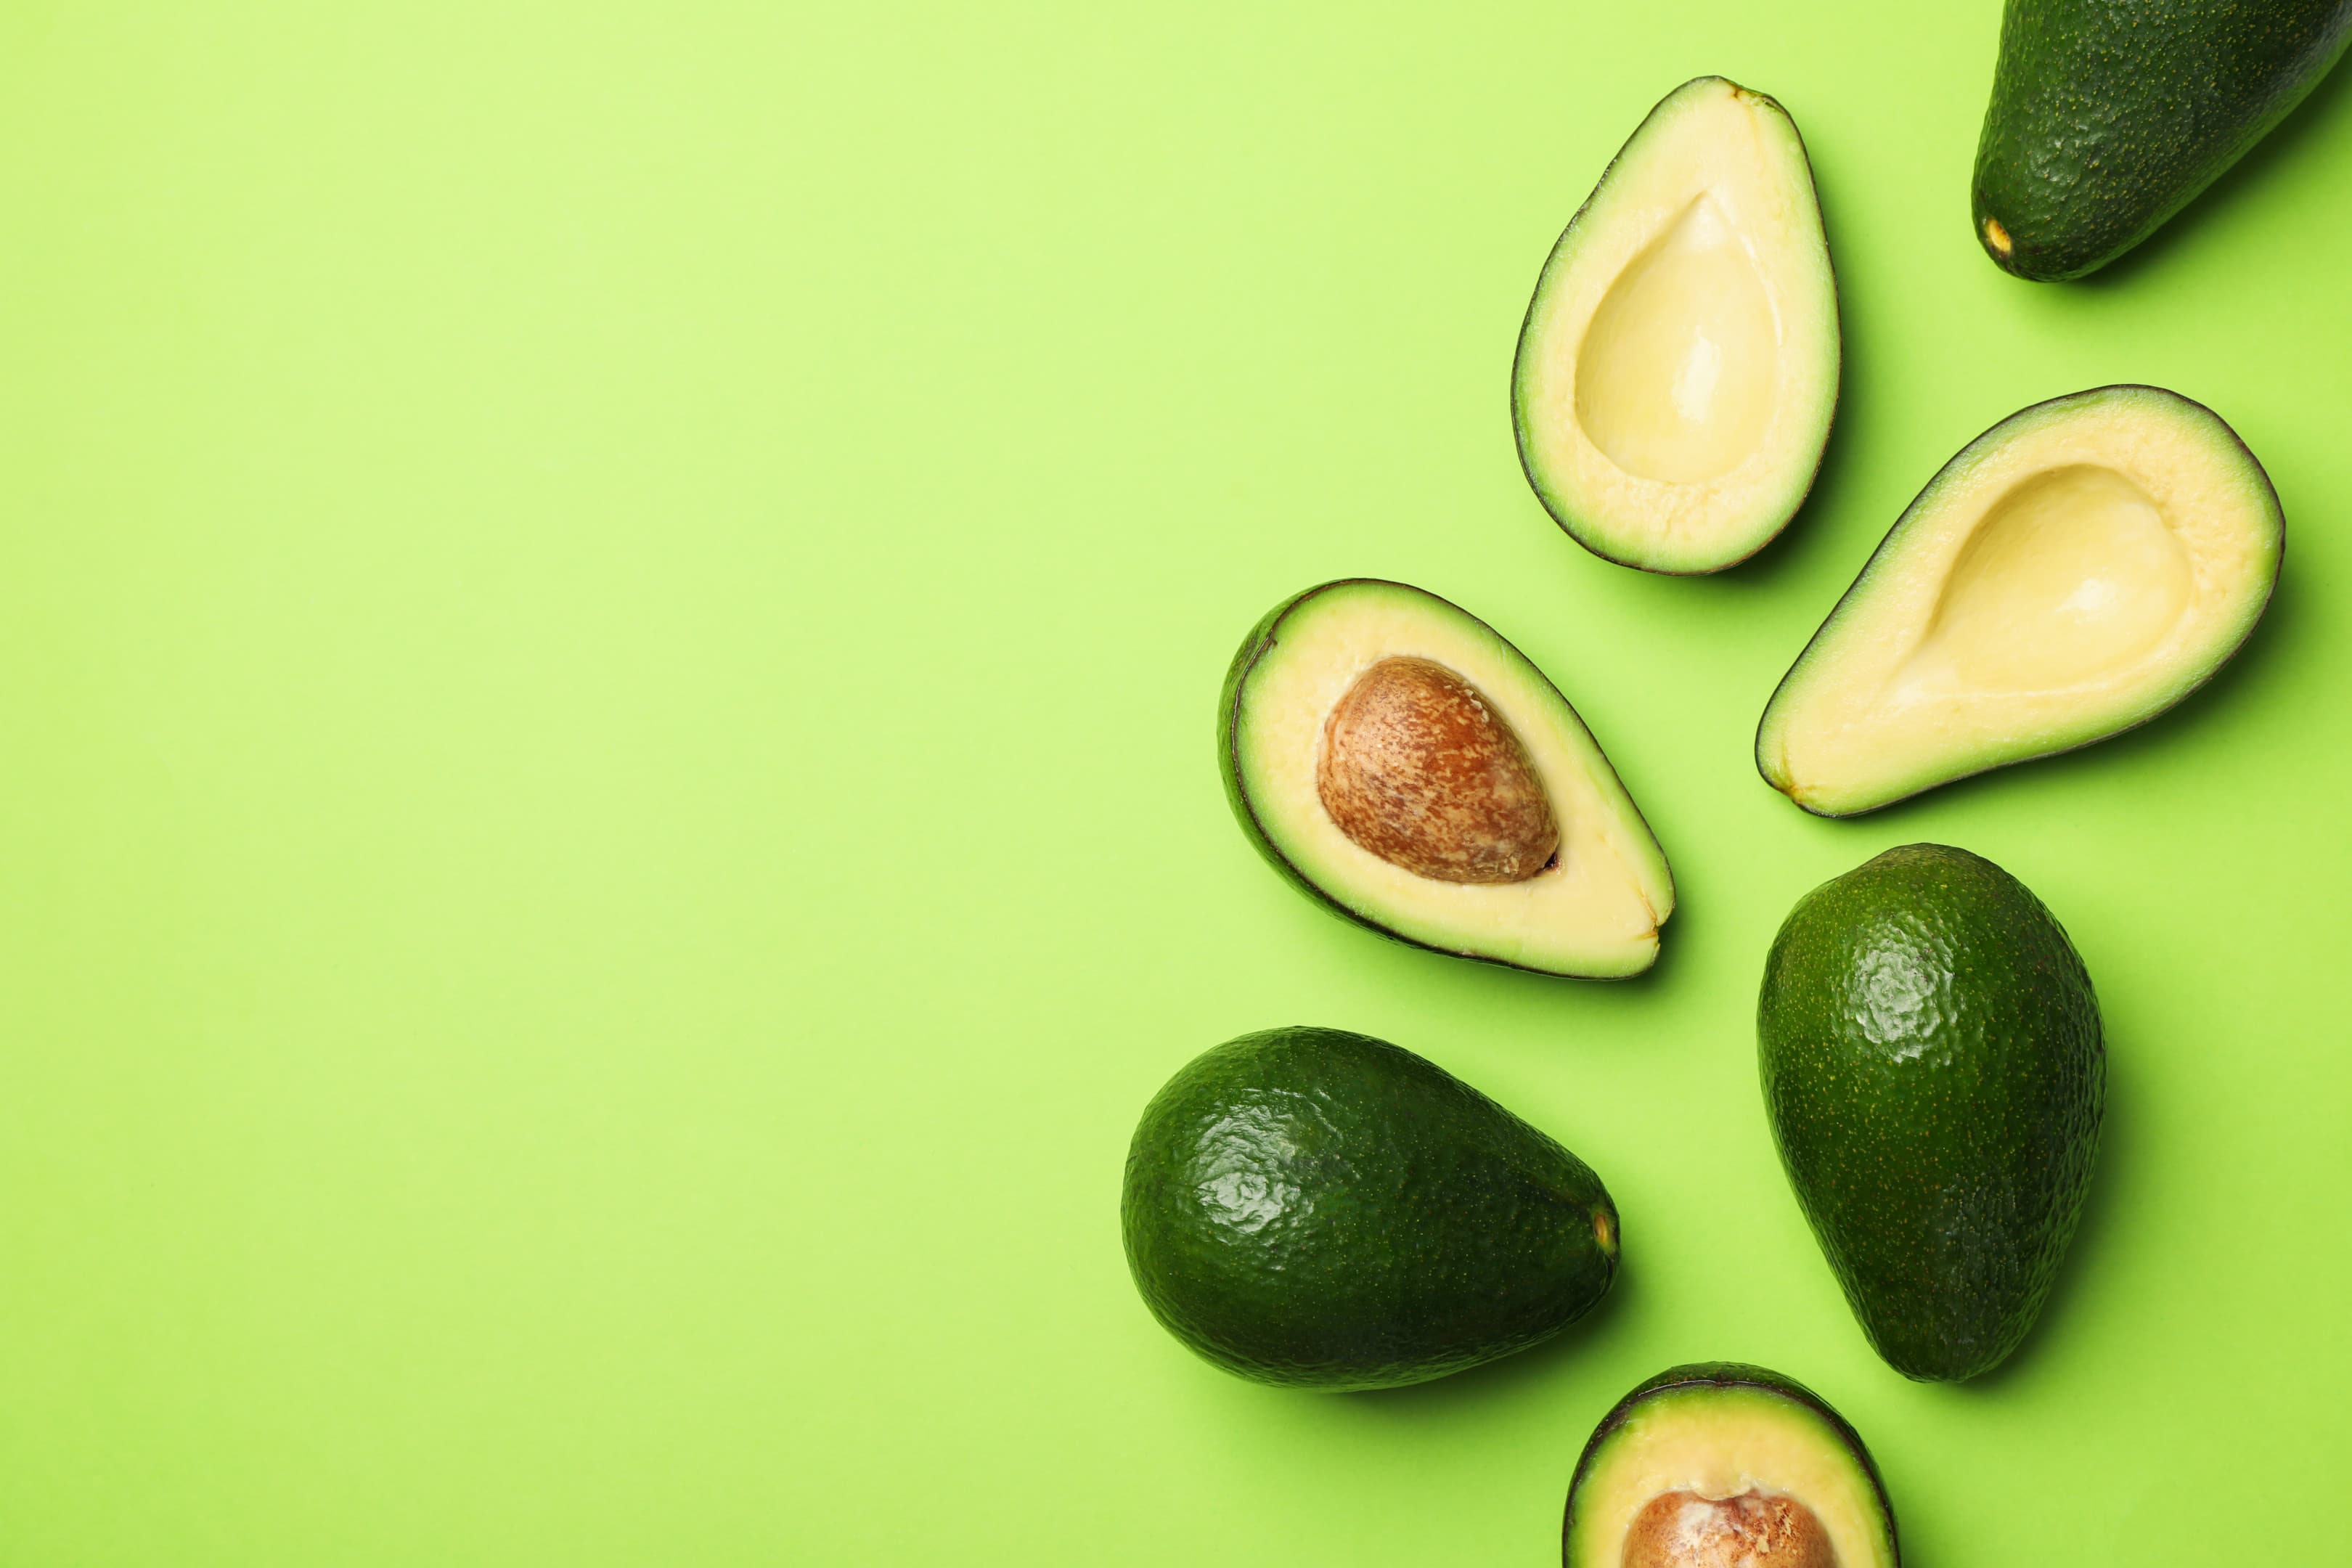 Avocados on green background